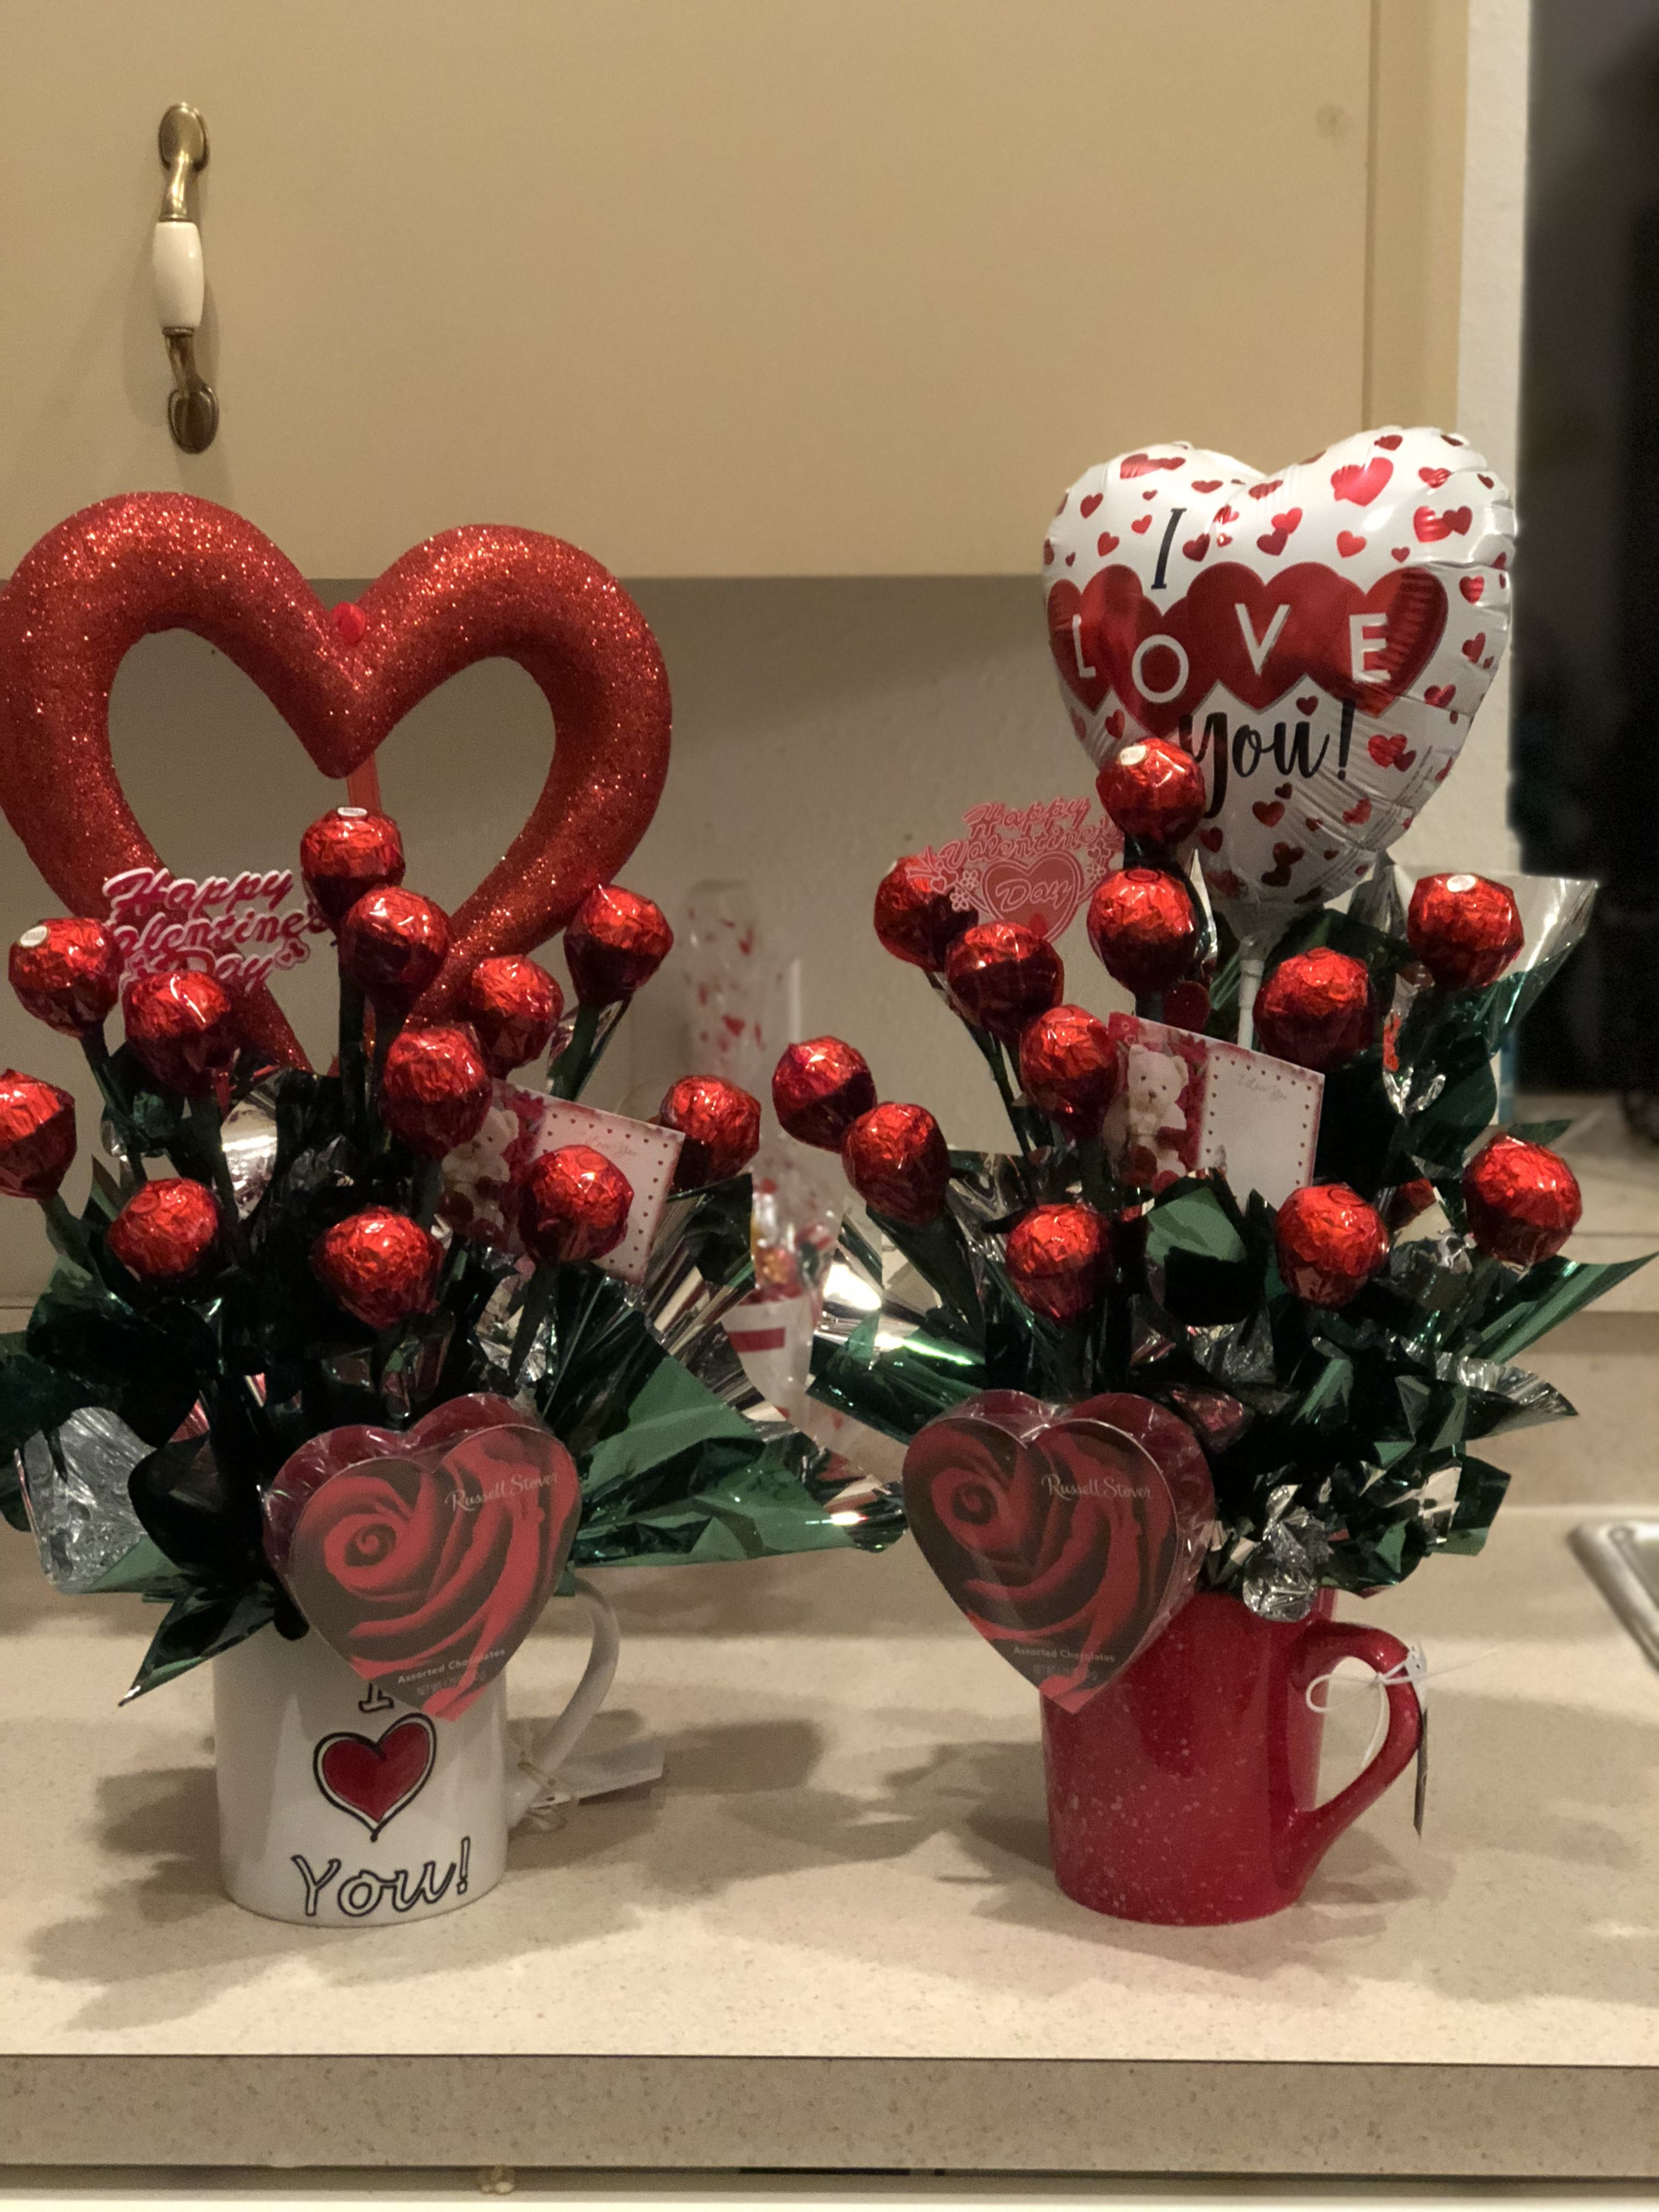 Valentines Day Arrangement With Ferrero Roche Chocolate In A Cup